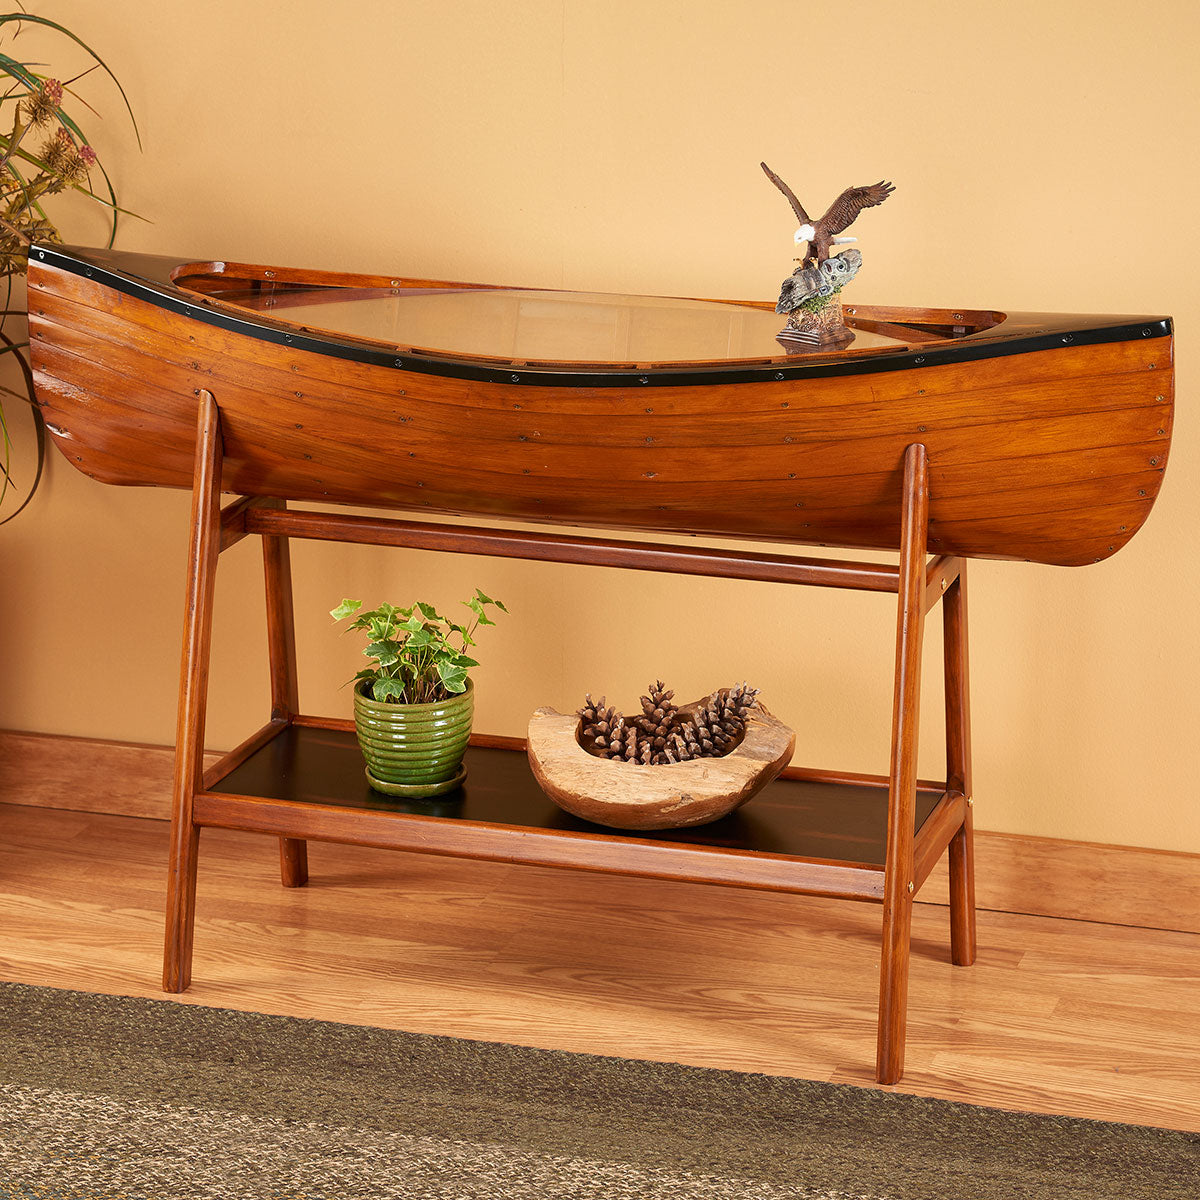 rustic-canoe-side-table-ideas